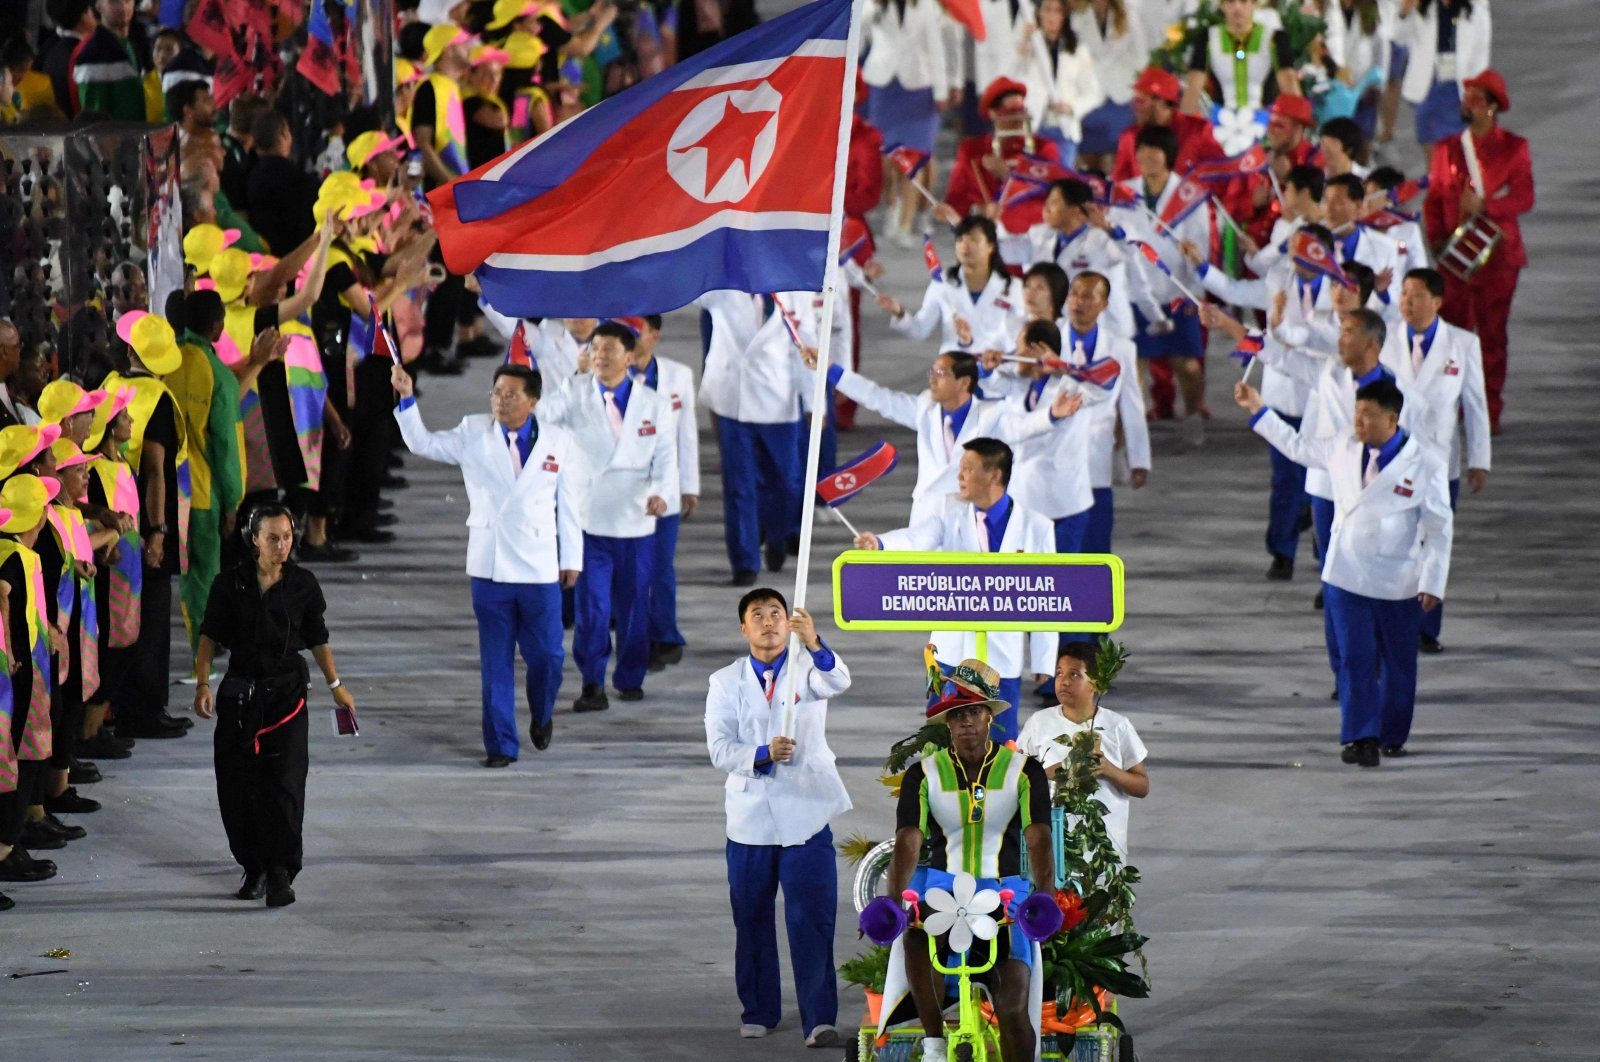 North Korea's delegation during the opening ceremony of the Rio 2016 Olympic Games at the Maracana stadium in Rio de Janeiro, Aug. 5, 2016. (AFP Photo)